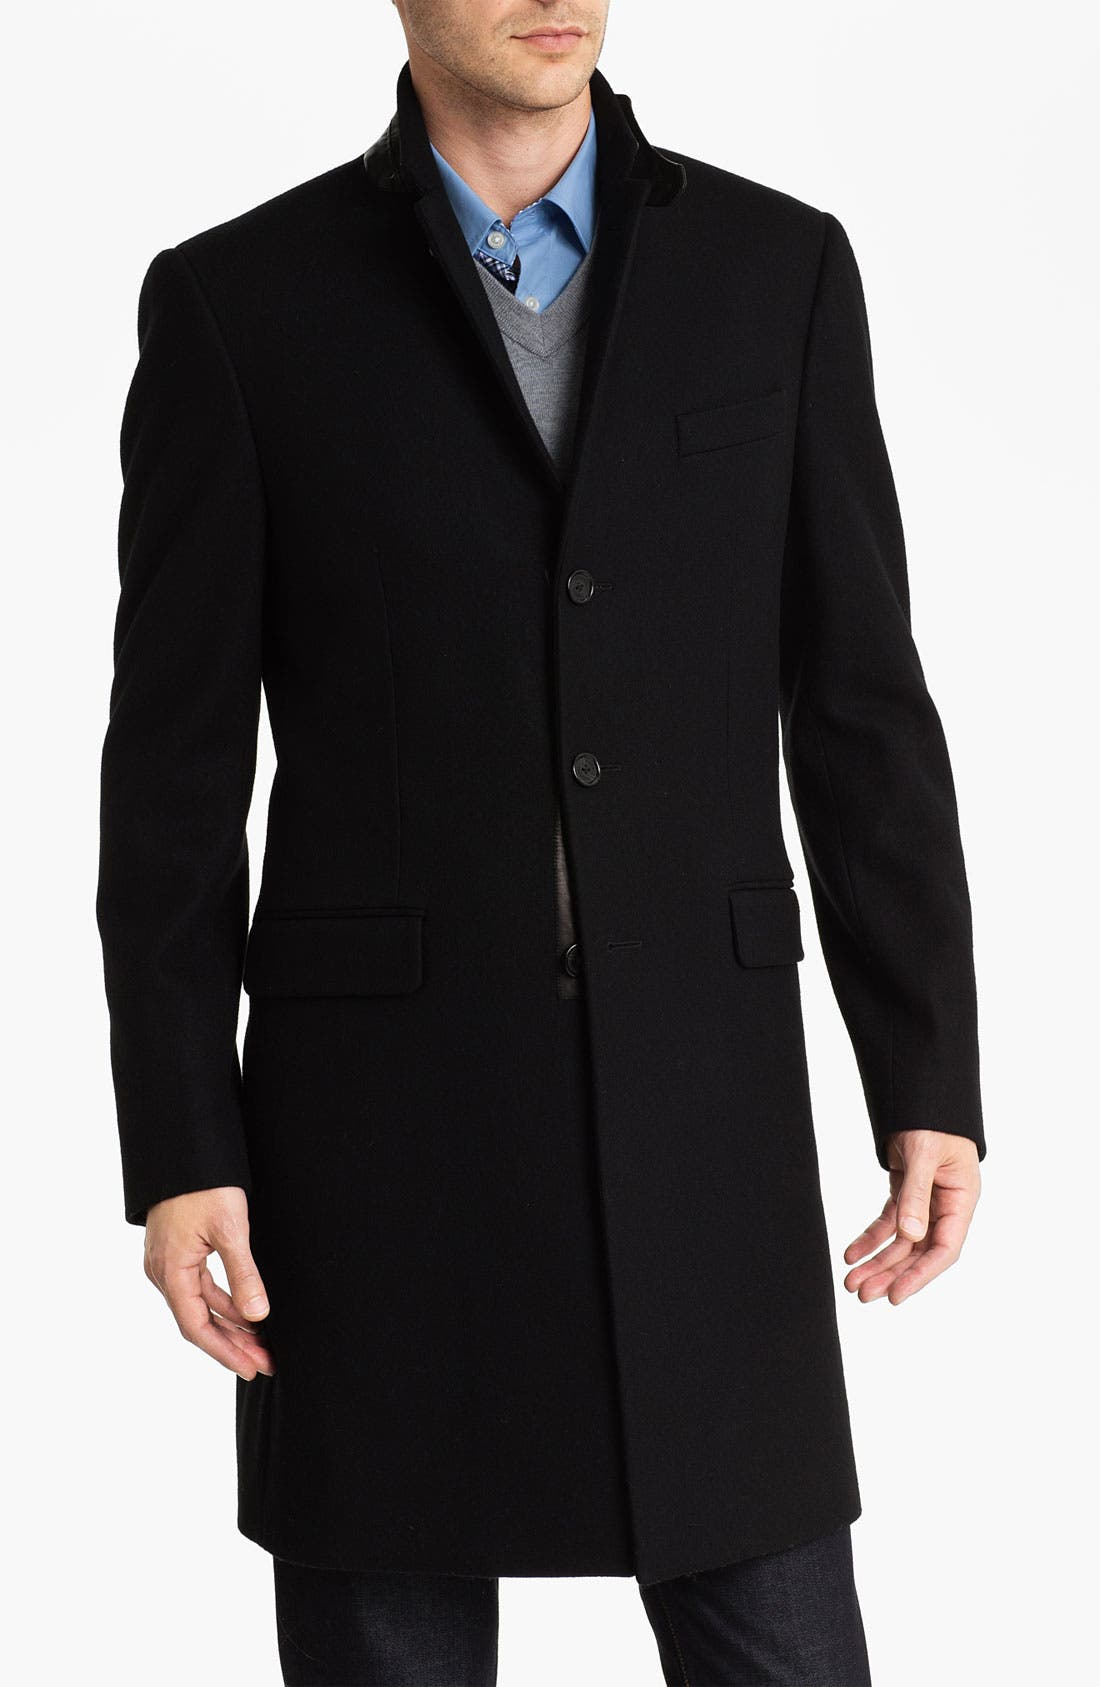 Melton Topcoat with Leather Trim,                             Main thumbnail 1, color,                             Black